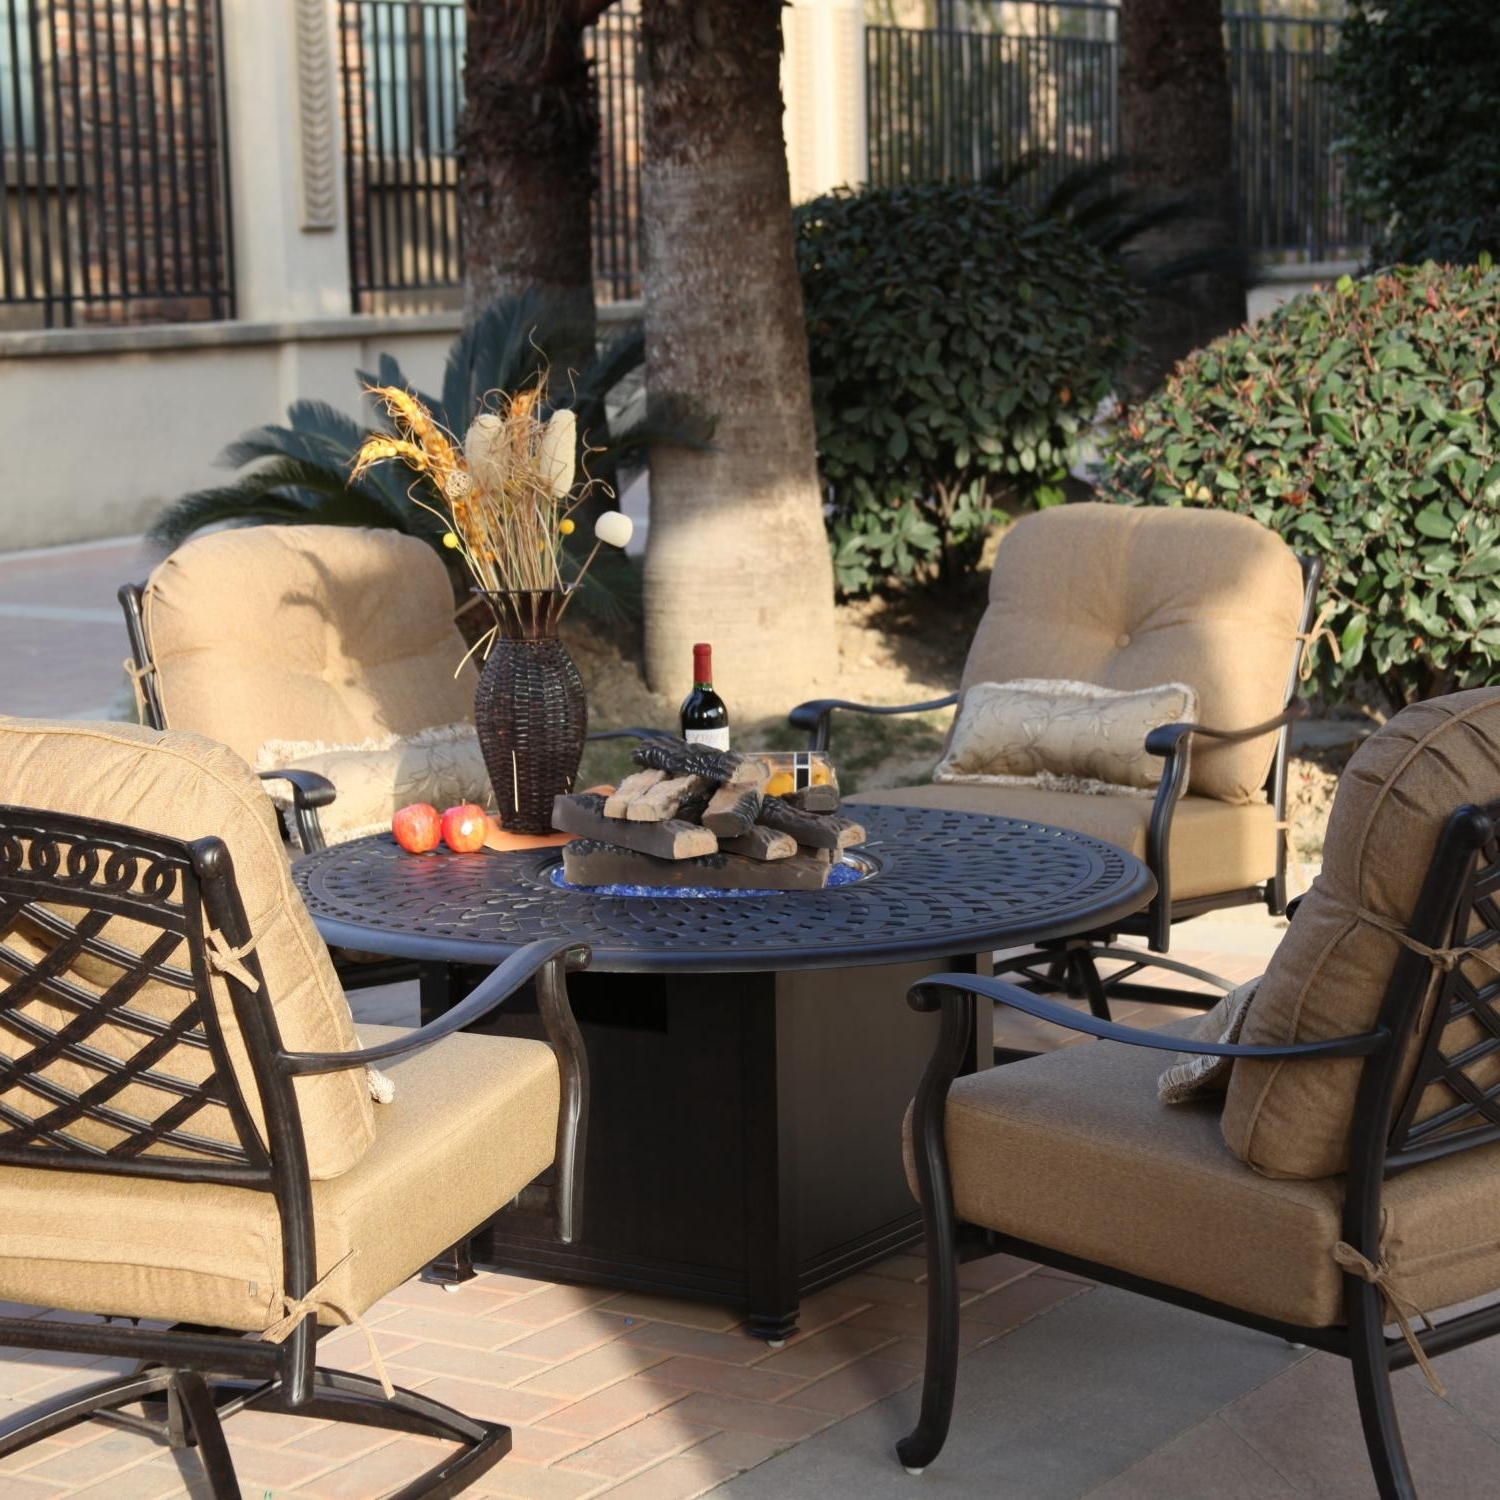 Patio Conversation Sets With Fire Pit Table With Regard To 2019 Darlee Sedona 5 Piece Aluminum Patio Fire Pit Seating Set (View 9 of 20)